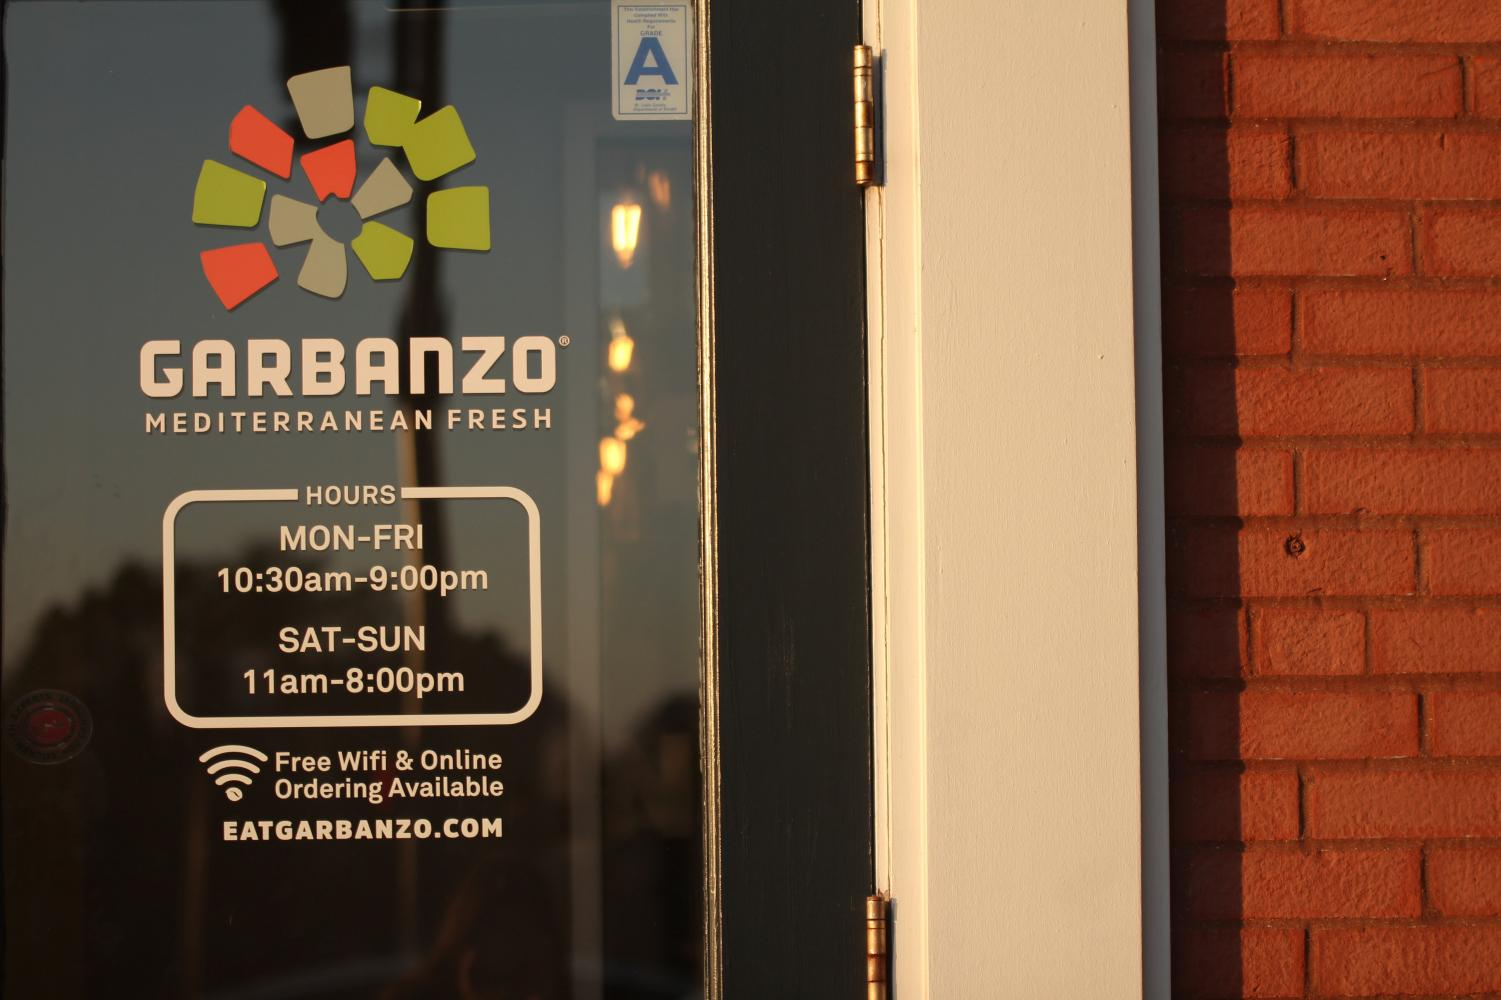 Garbanzo sits at the corner of Maryland & Forsyth in downtown Clayton.